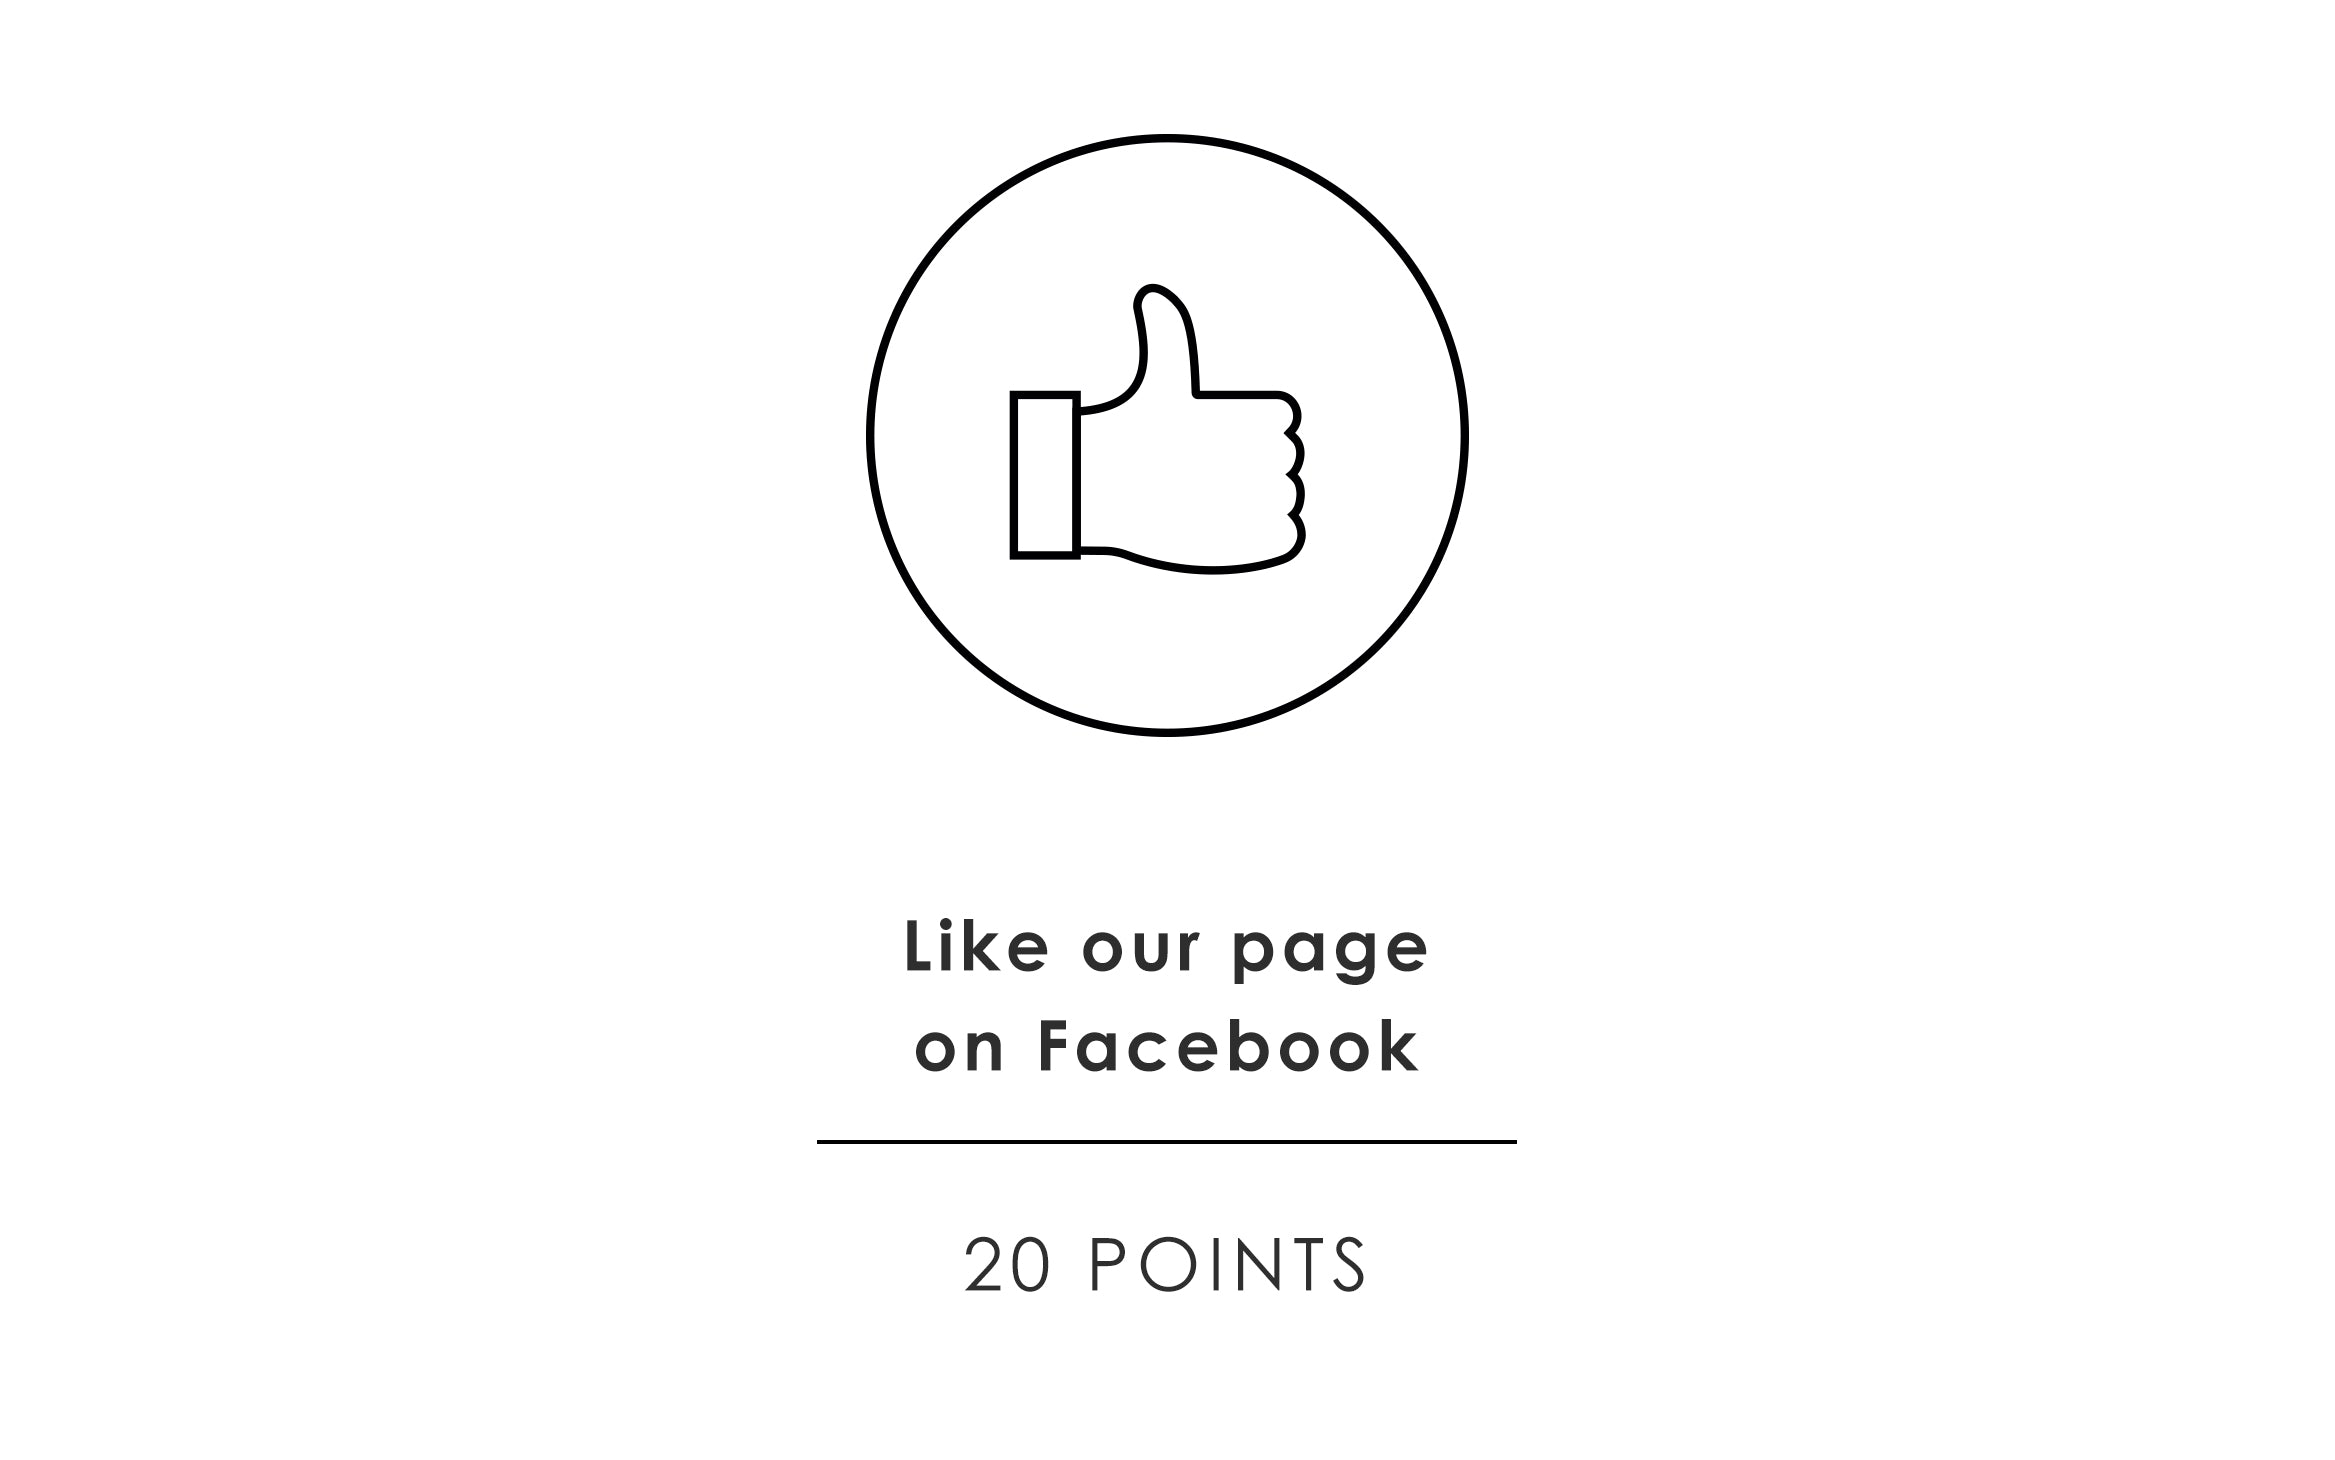 Like our Facebook Page - 20 points